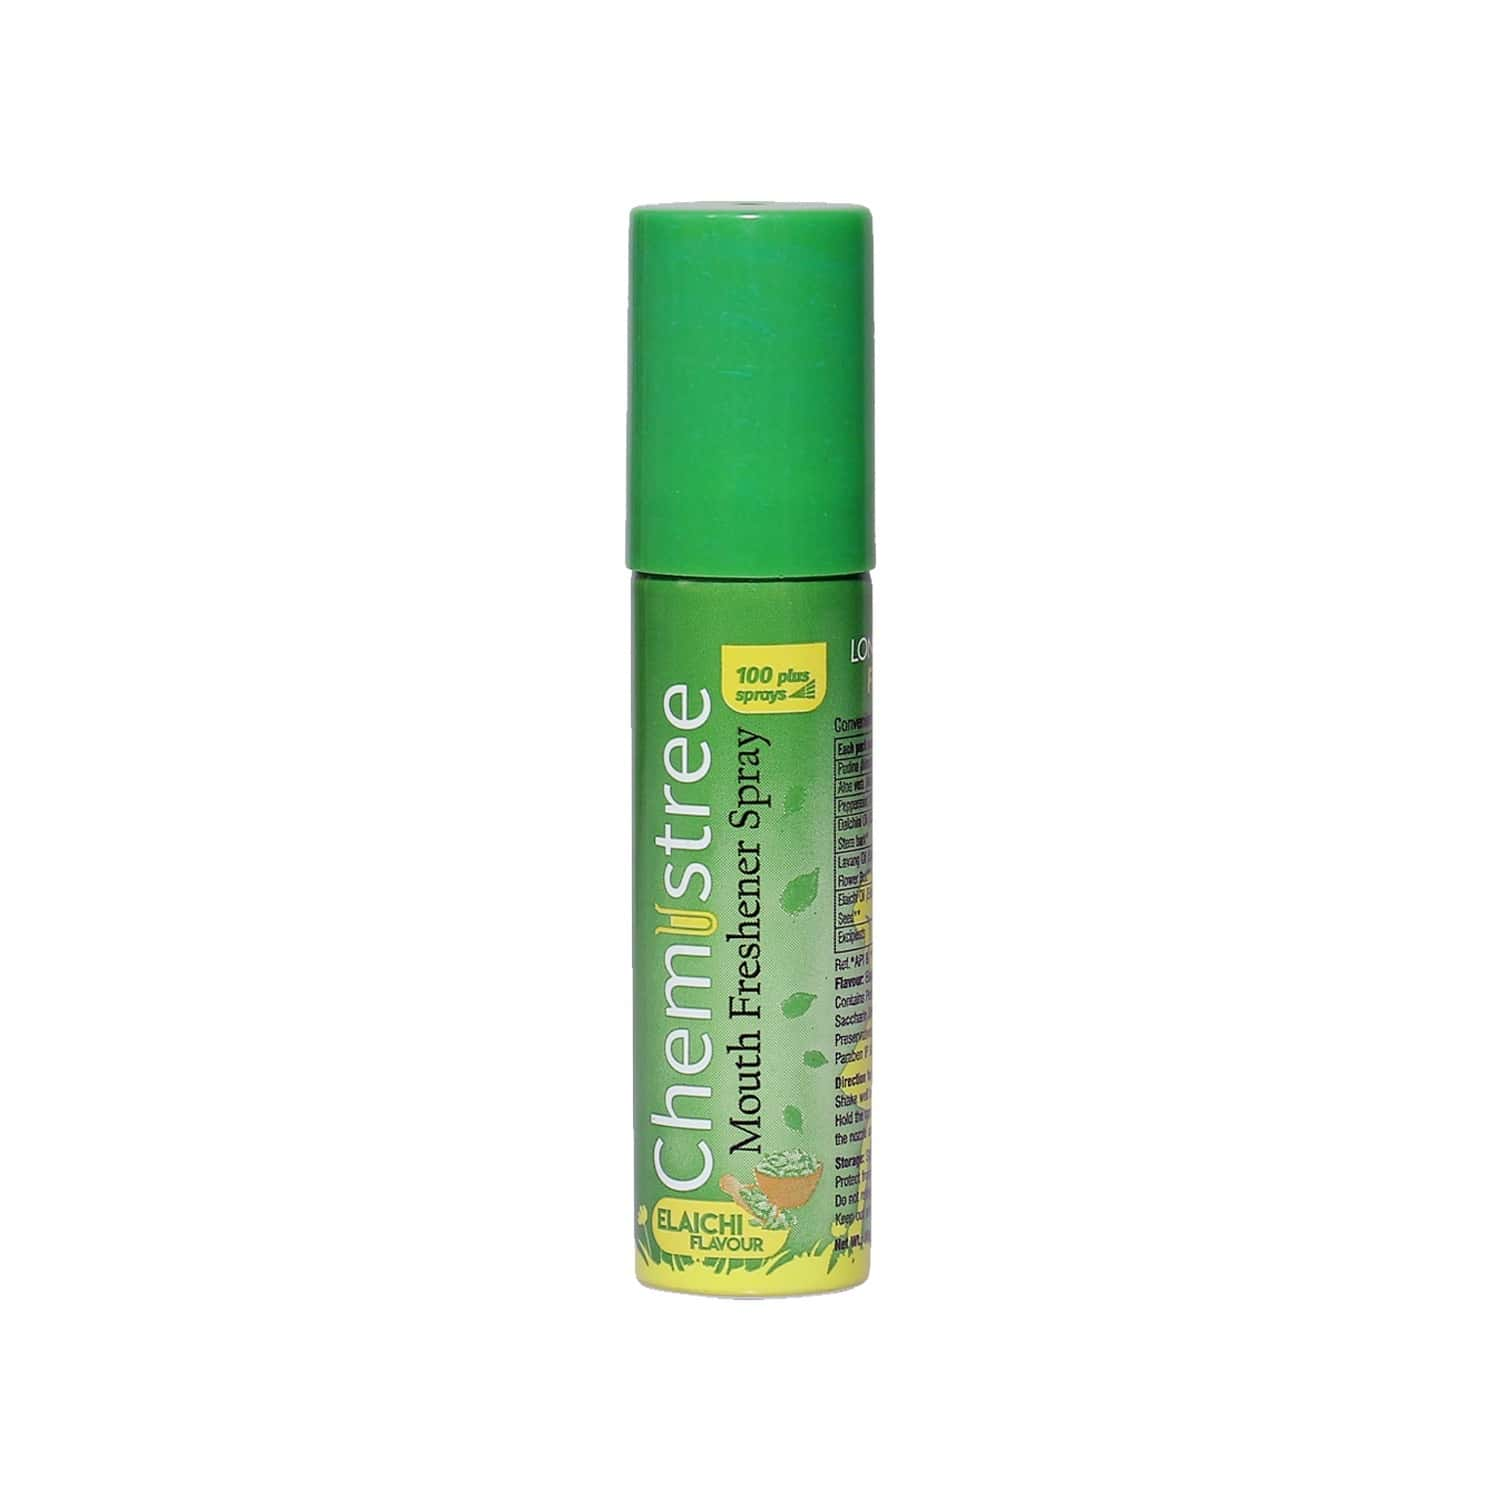 Chemistree Long Lasting Elaichi Mouth Freshener - 15g